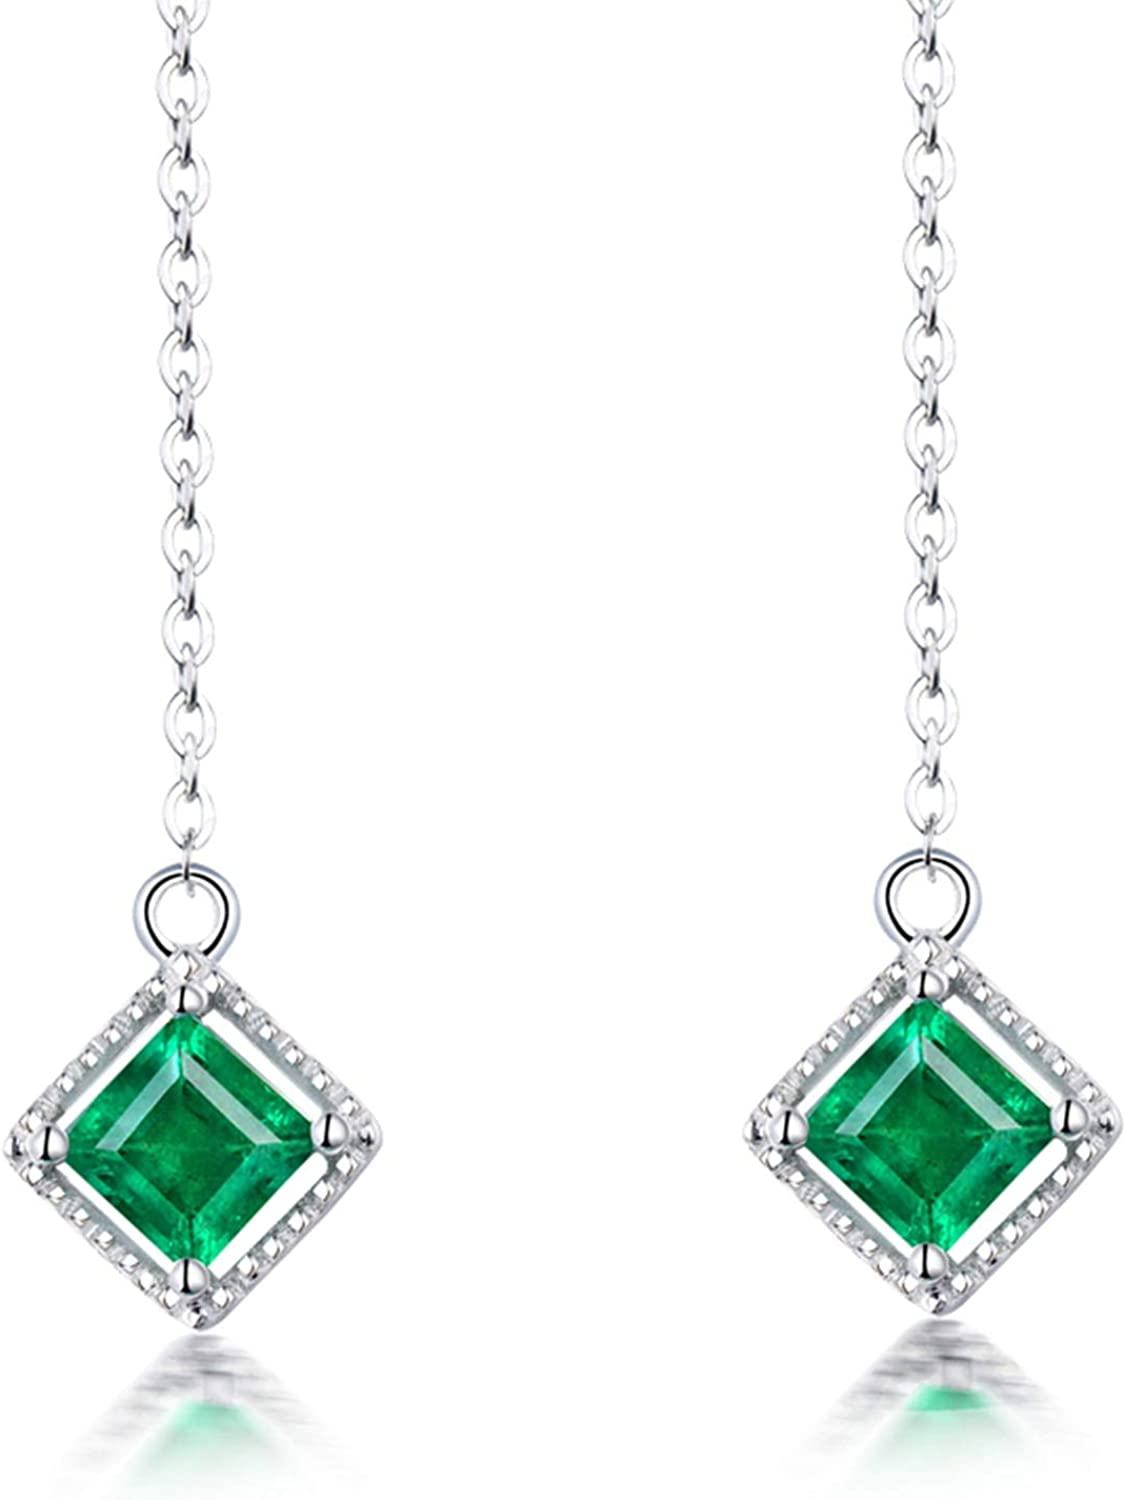 OFFicial mail order Aokarry Fine Jewelry - 18K White Gold Lo Women For Earrings Drop Weekly update